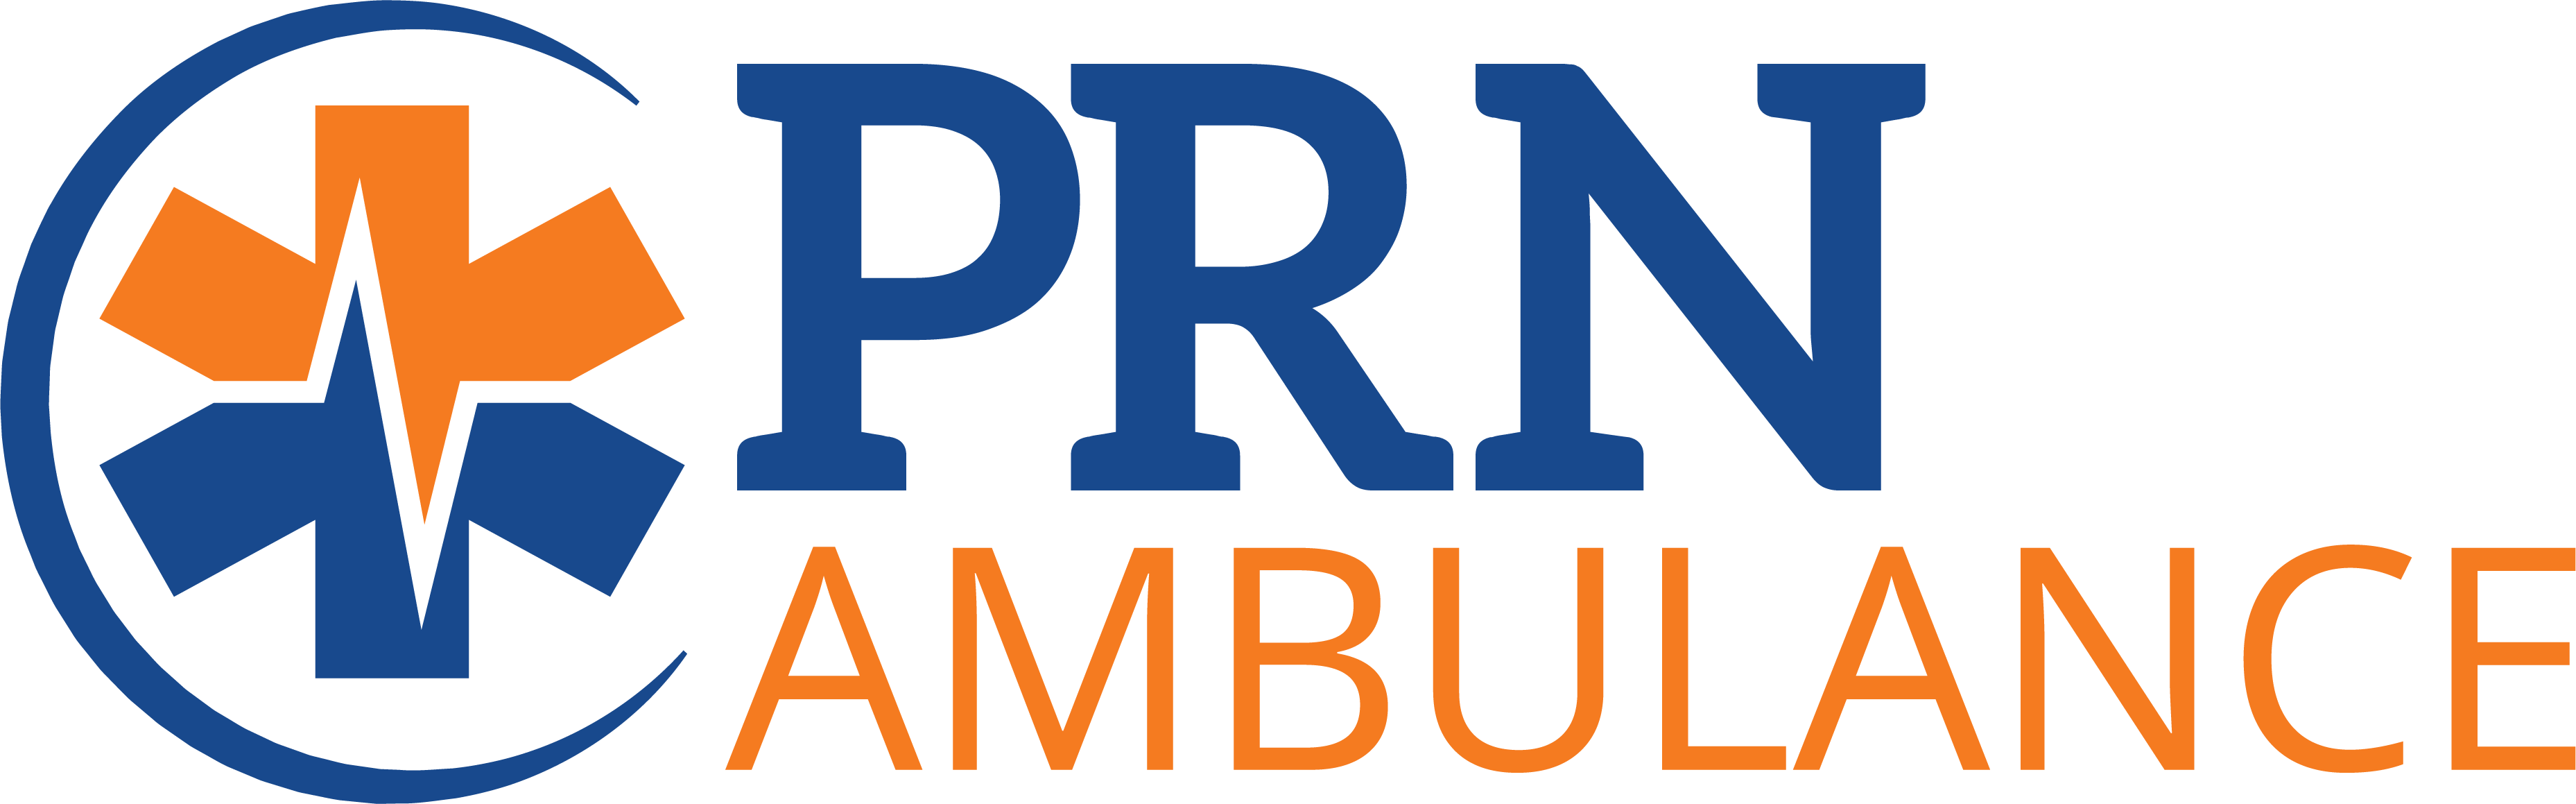 Careers PRN Long Logo